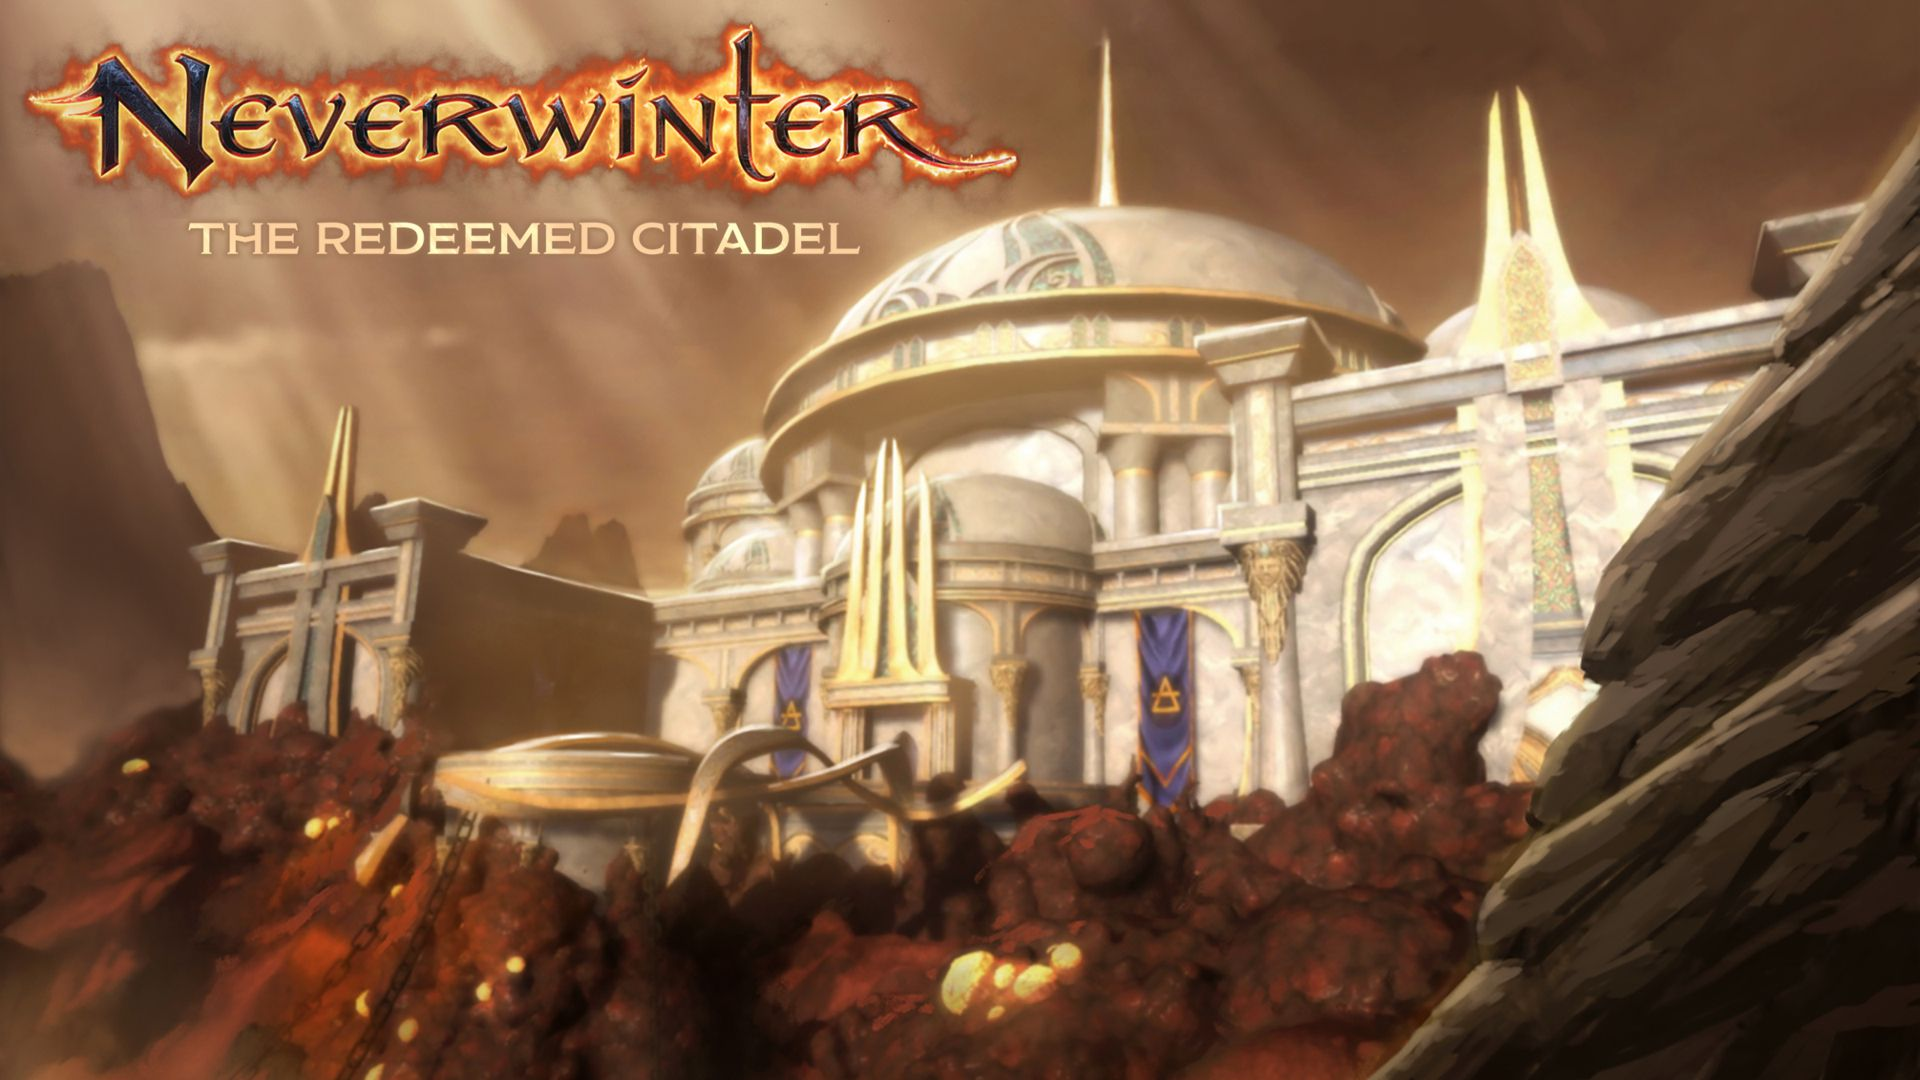 Neverwinter The Redeemed Citadel